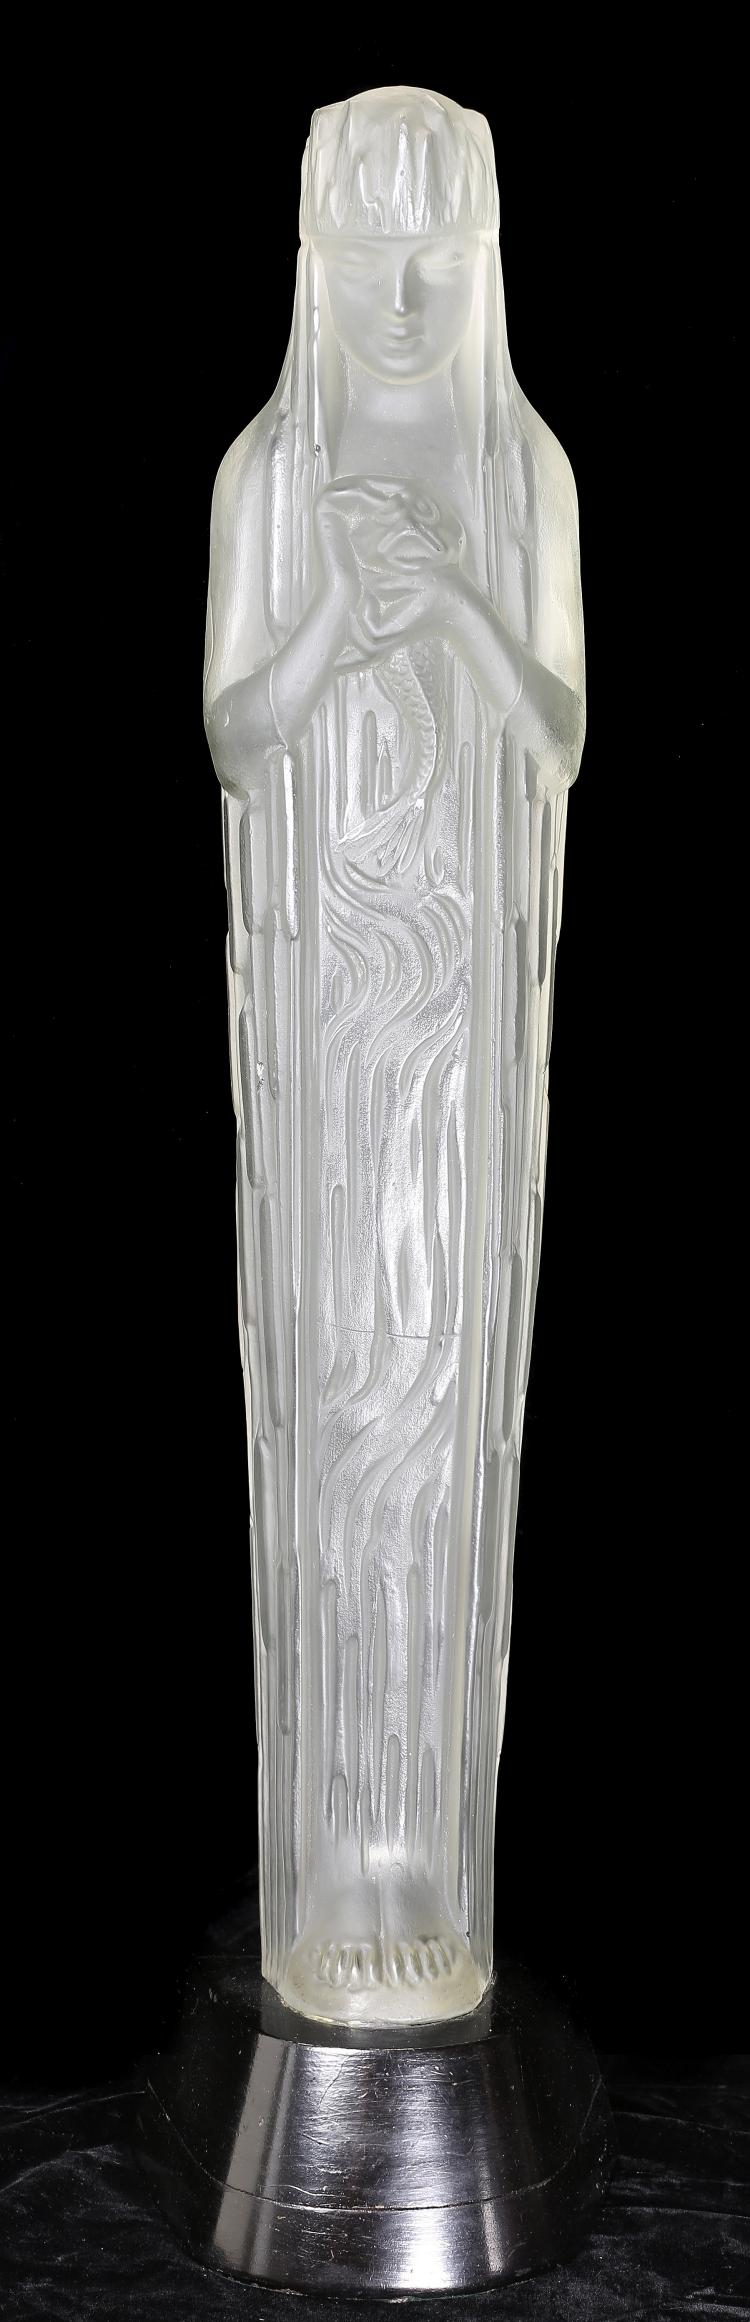 RENE LALIQUE (1860-1945)'SOURCE DE LA FONTAINE DORIS'